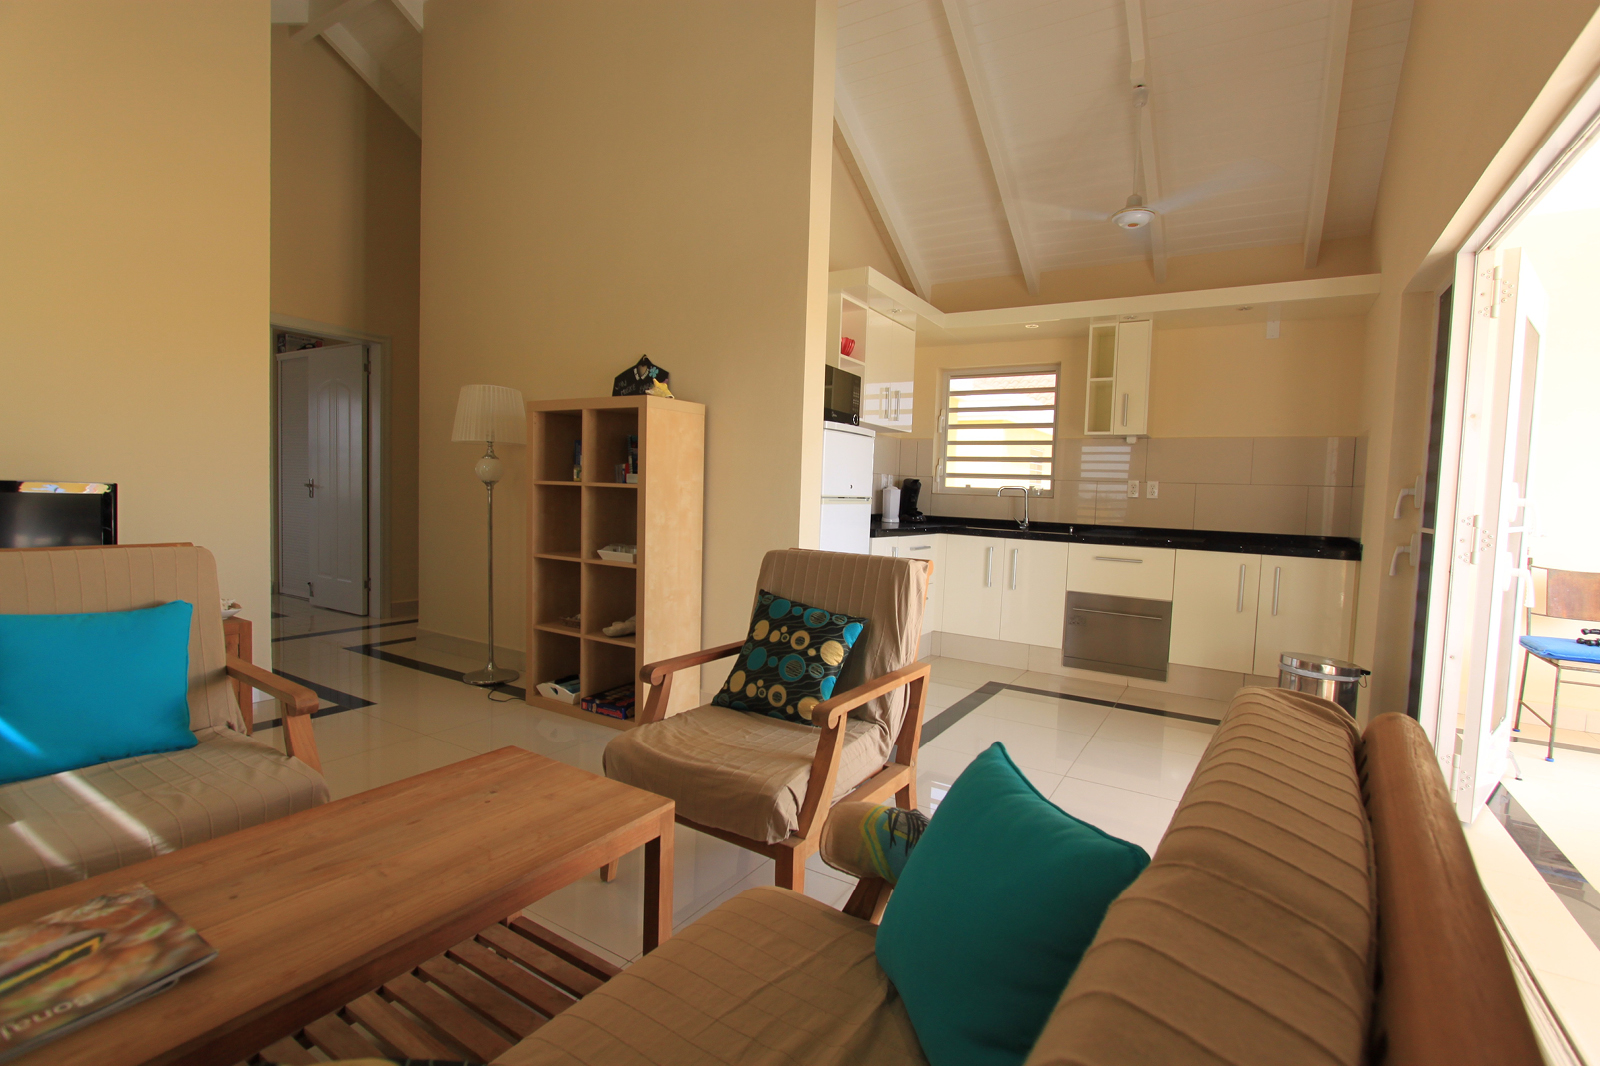 Apartment Prikichi 2 bedrooms